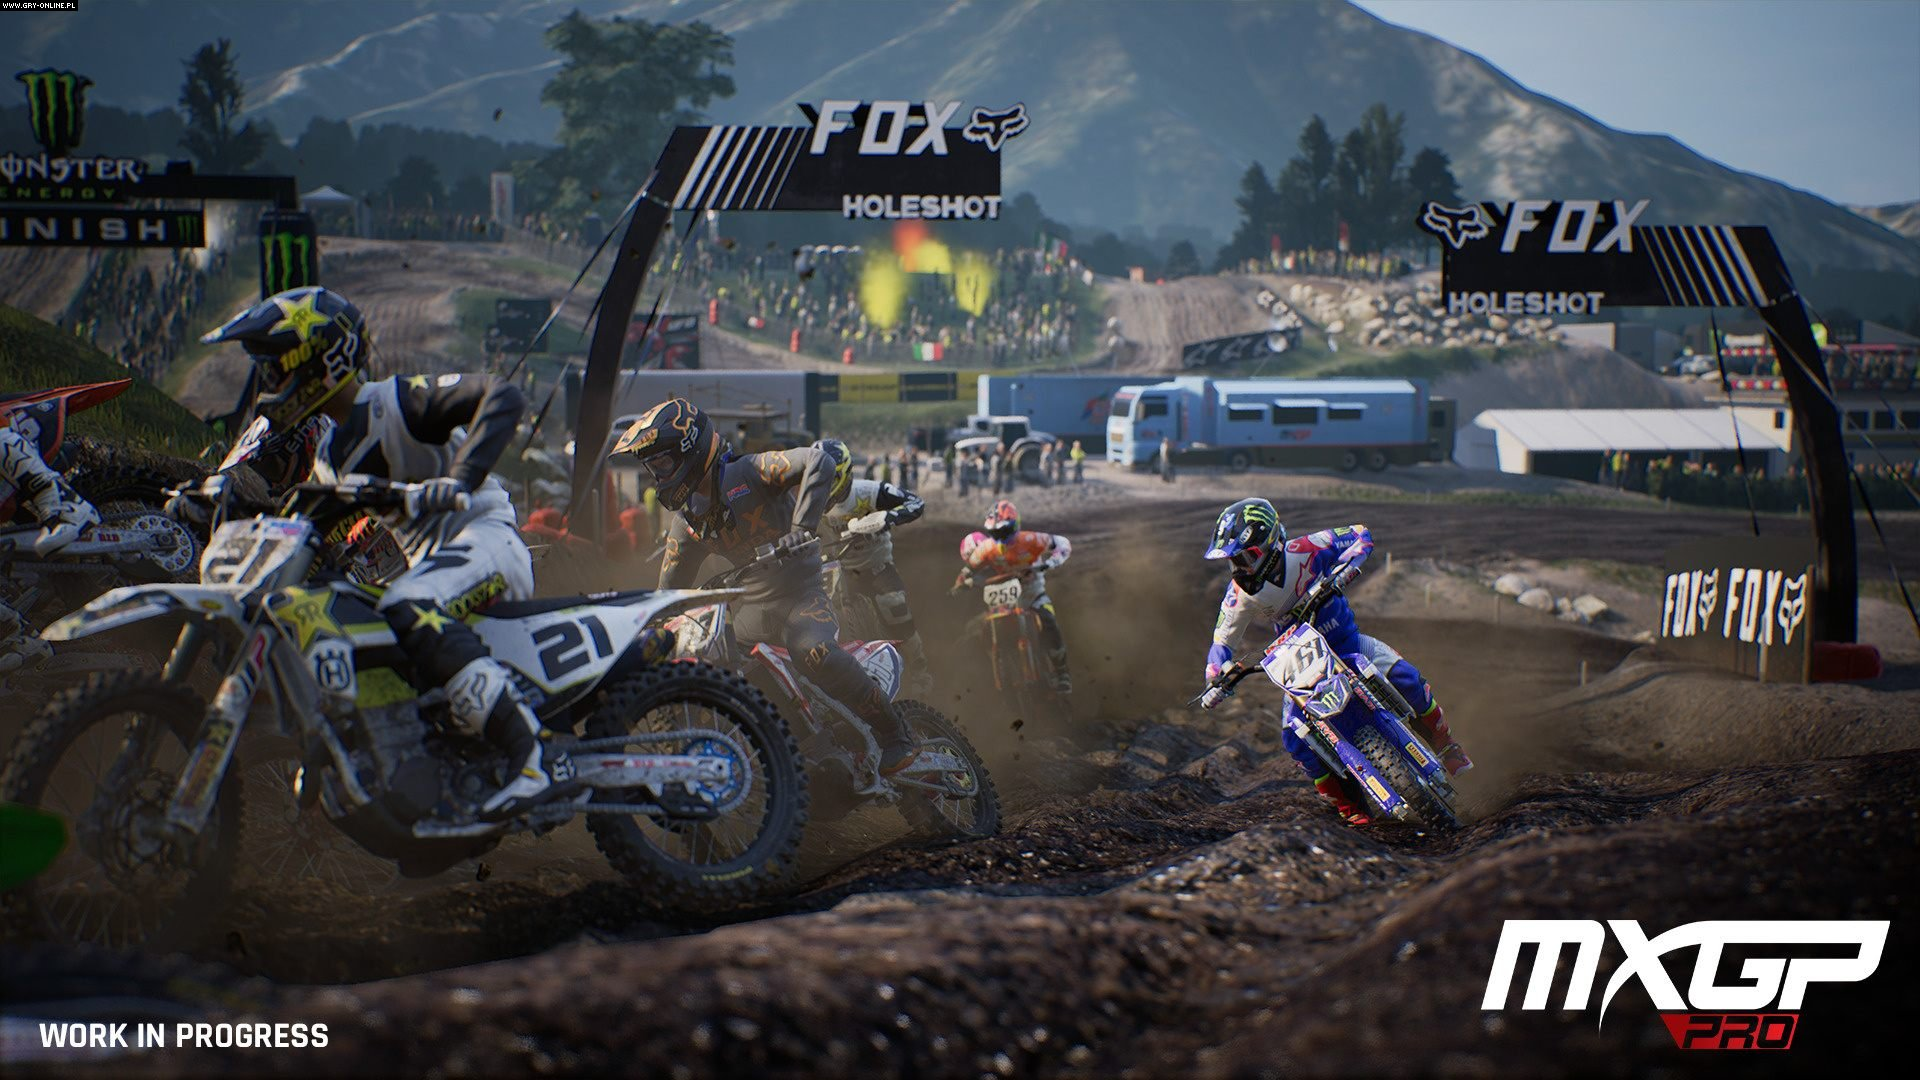 MXGP PRO PC, PS4, XONE Games Image 25/42, Milestone